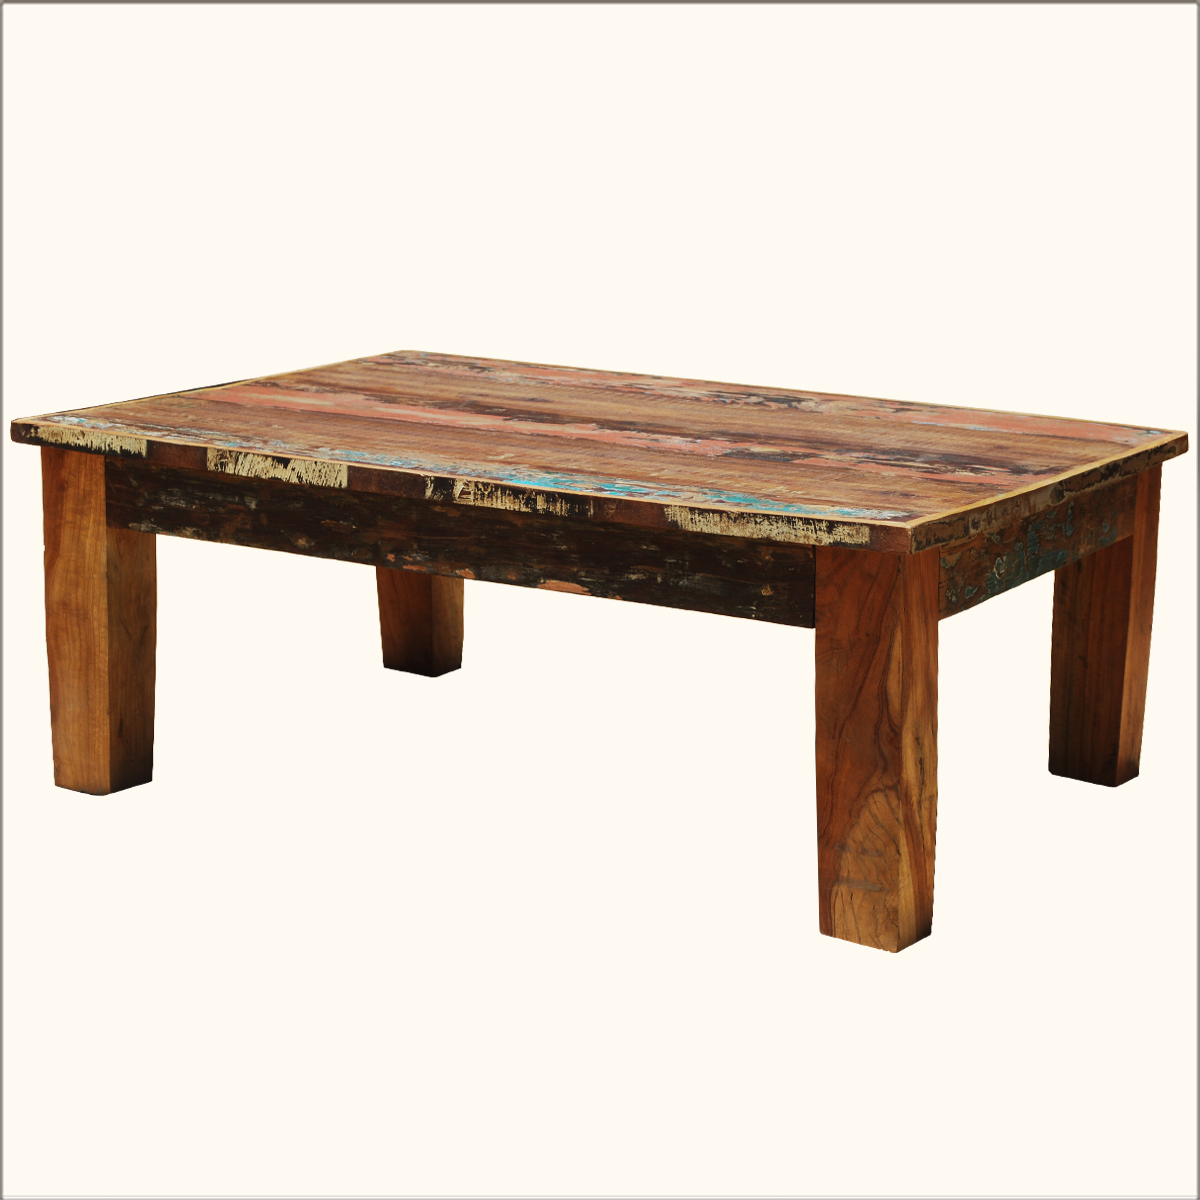 Distressed rustic reclaimed coffee table wood multi color cocktail furniture ebay Recycled wood coffee table